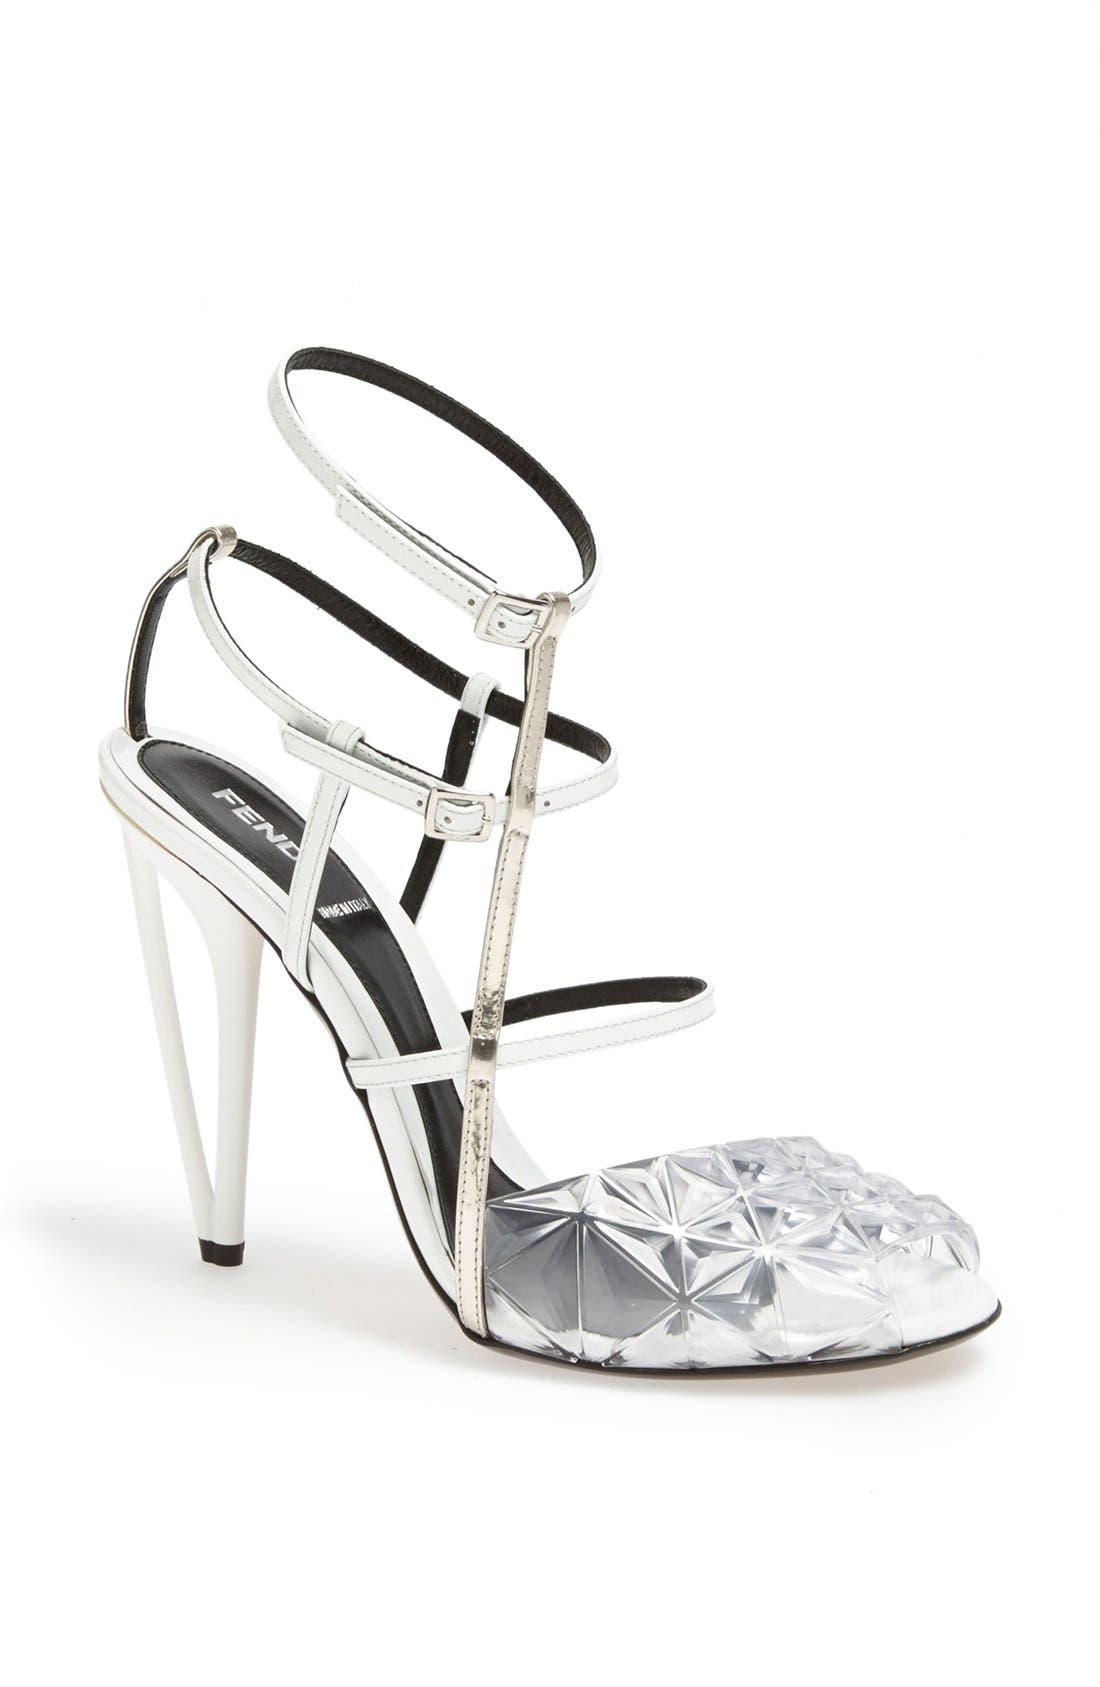 Alternate Image 1 Selected - Fendi 'Iridia' Sandal